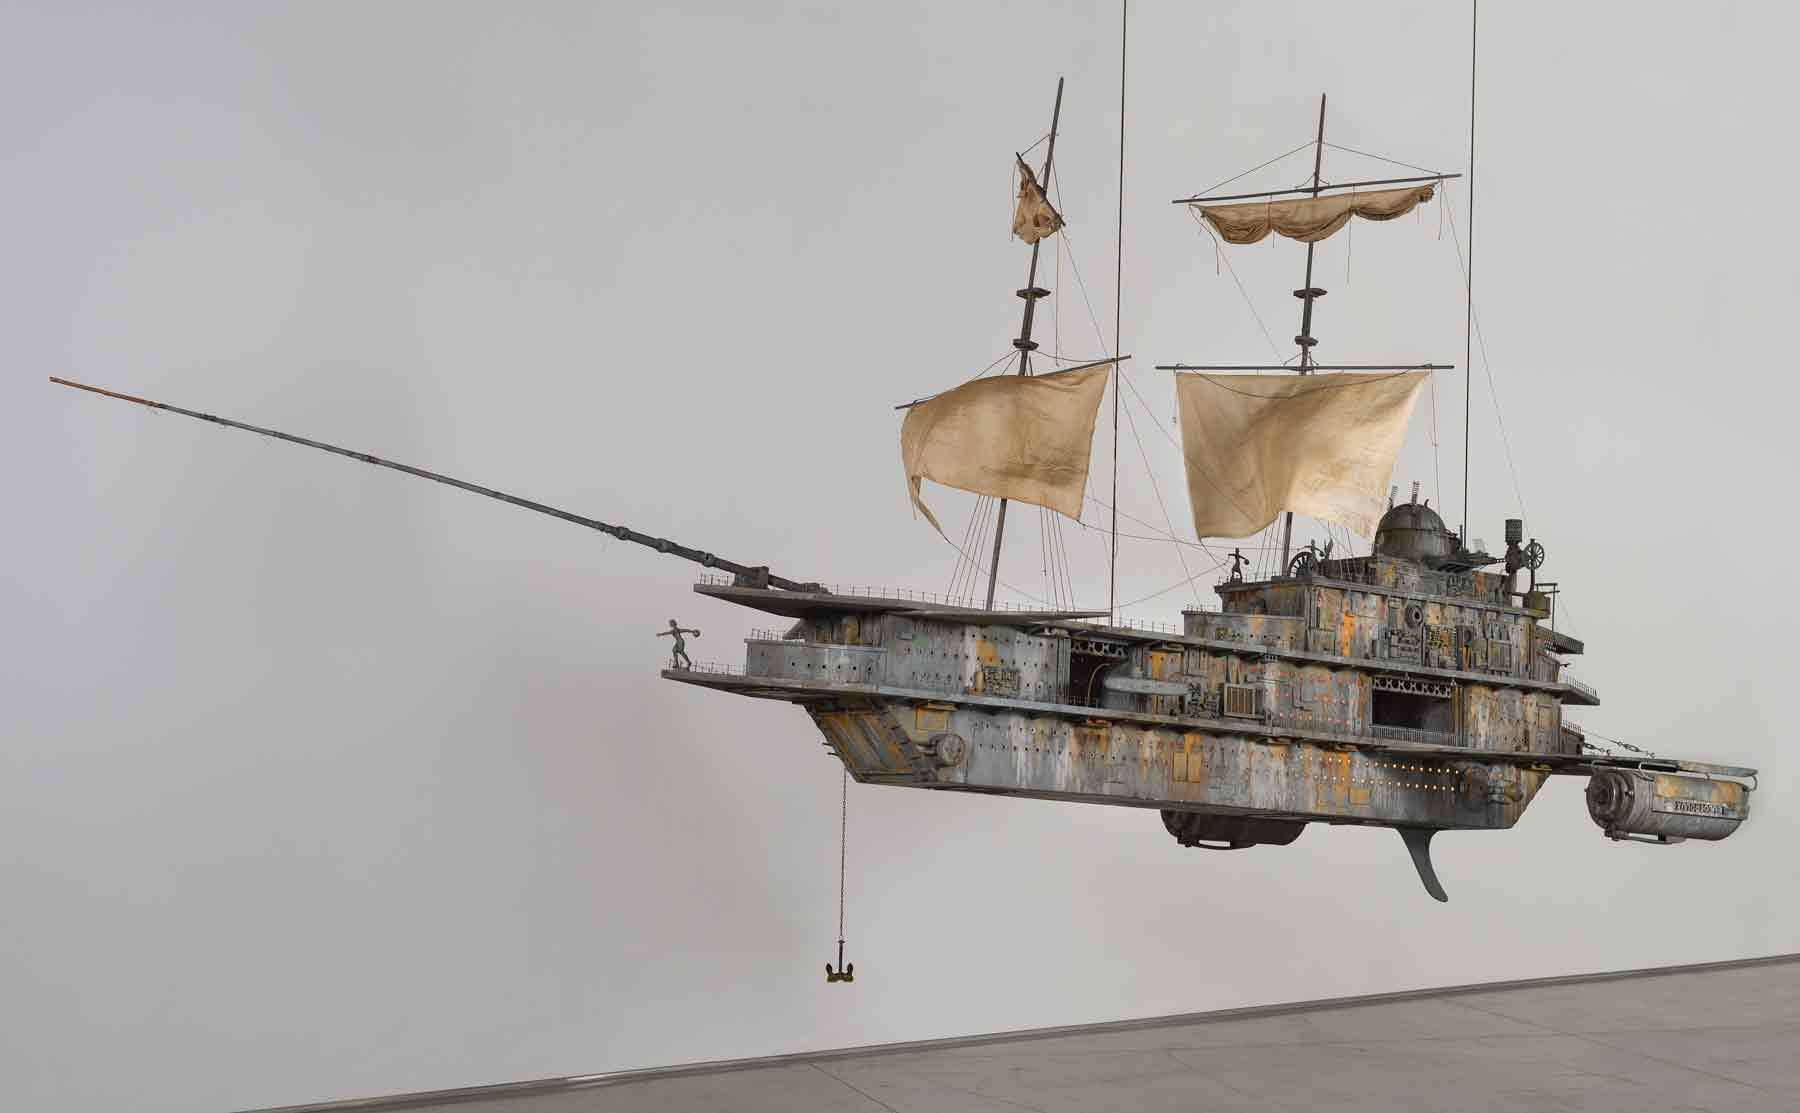 Michael C. McMillen. The Pequod II, 1987. Wood and metal kinetic assemblage. Peabody Essex Museum, Gift of Michael and Lauren McMillen, in memory of James Doolin. © Michael C. McMillen. Courtesy of L.A. Louver, Venice, CA.